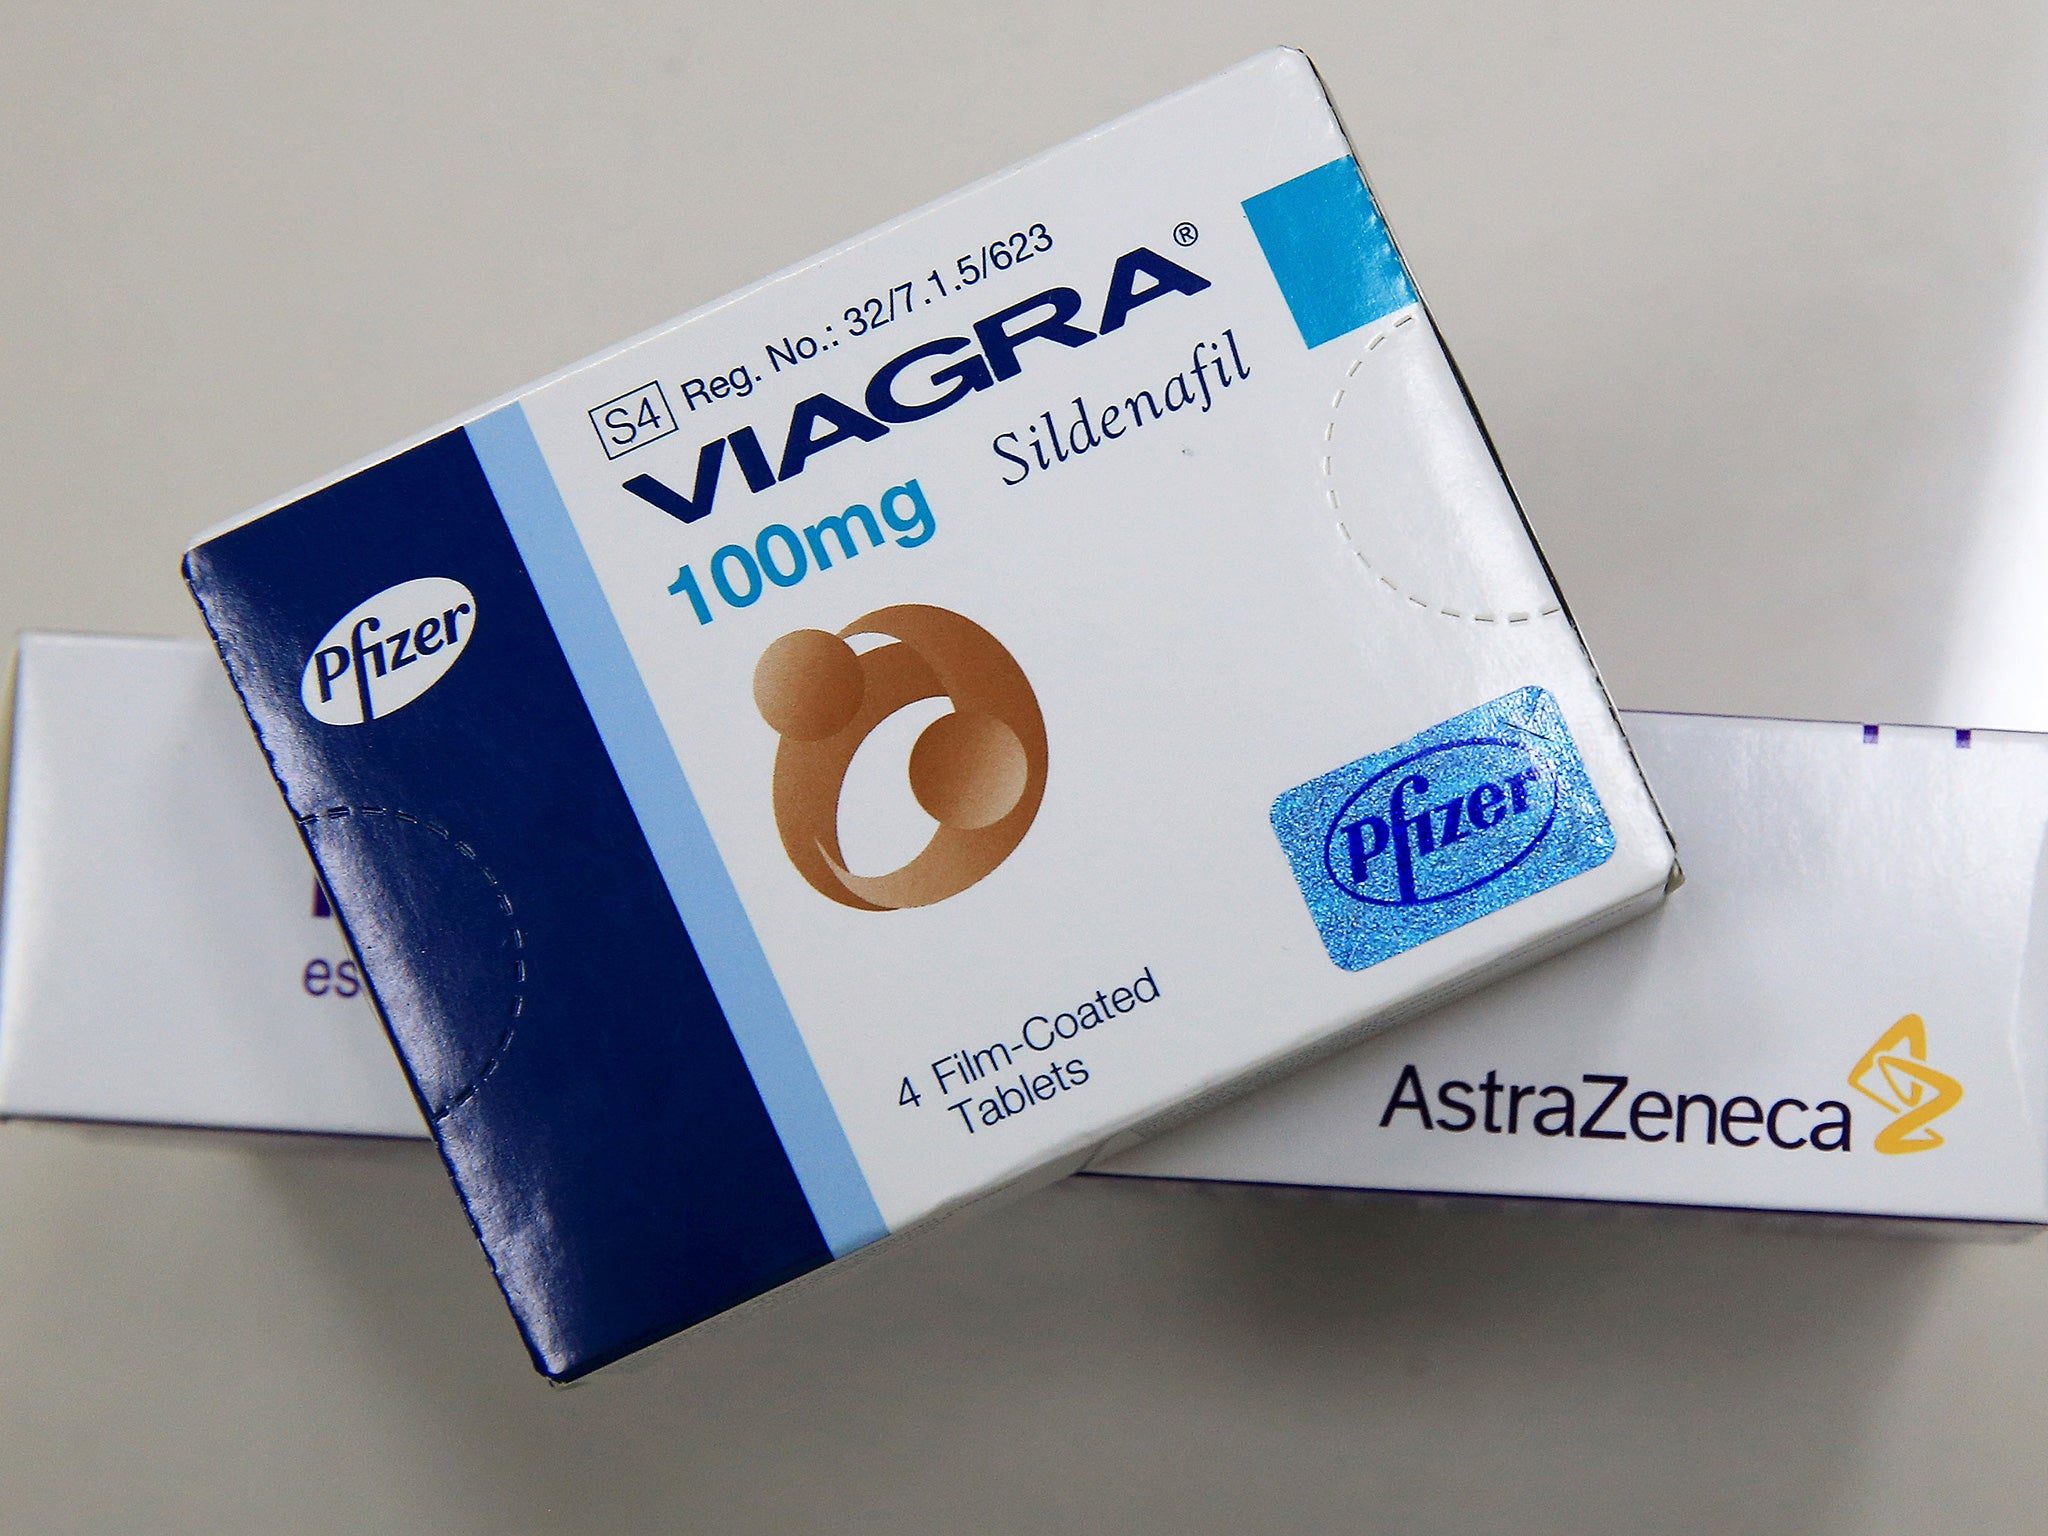 viagra prescribed online legally